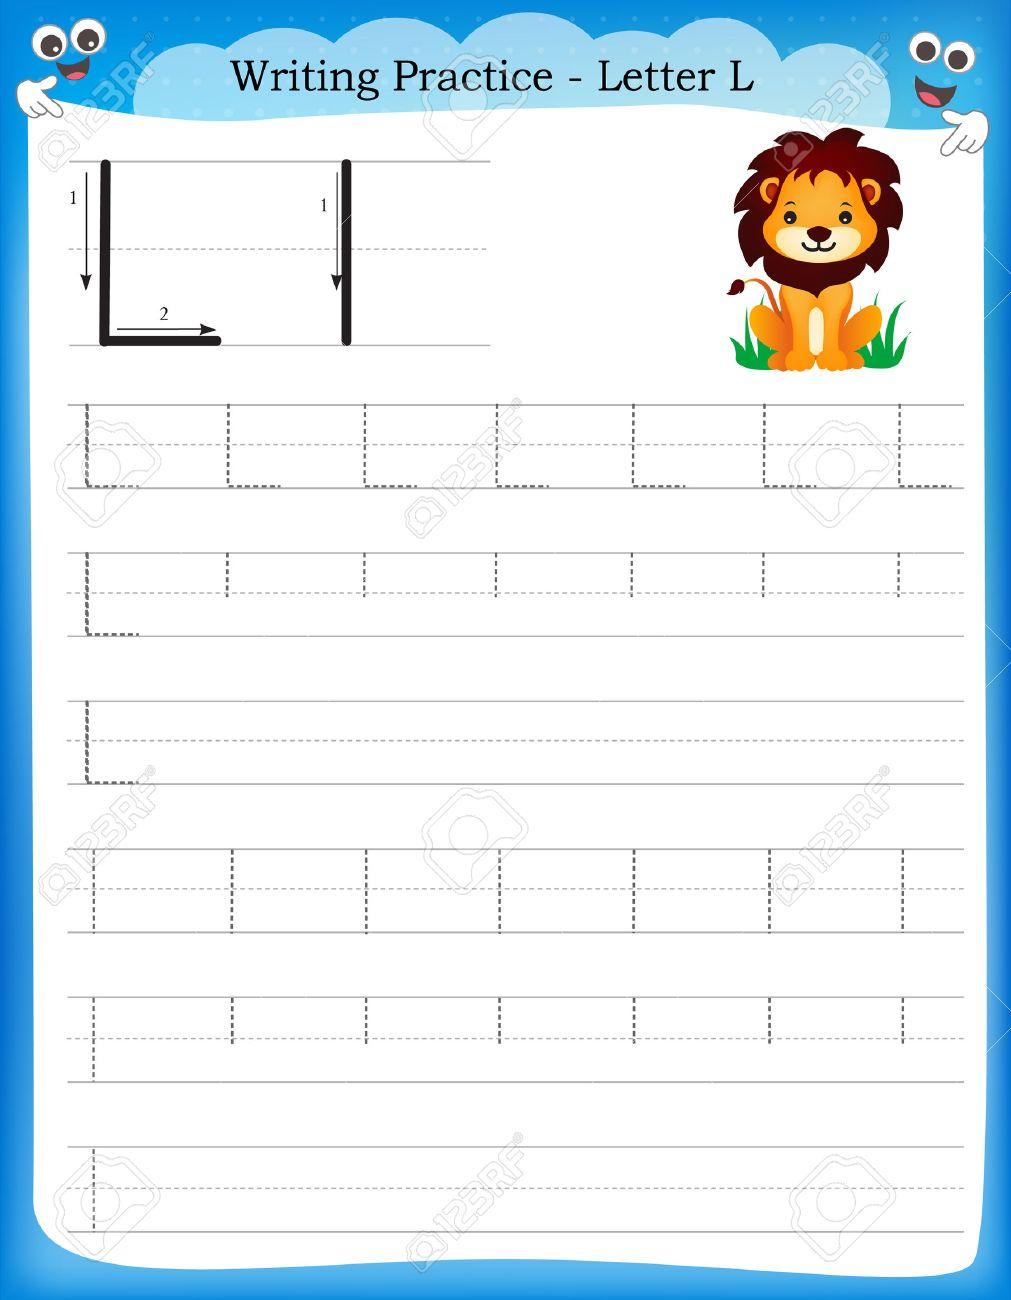 math worksheet : writing practice letter l printable worksheet with clip art for  : Letter L Worksheets Kindergarten